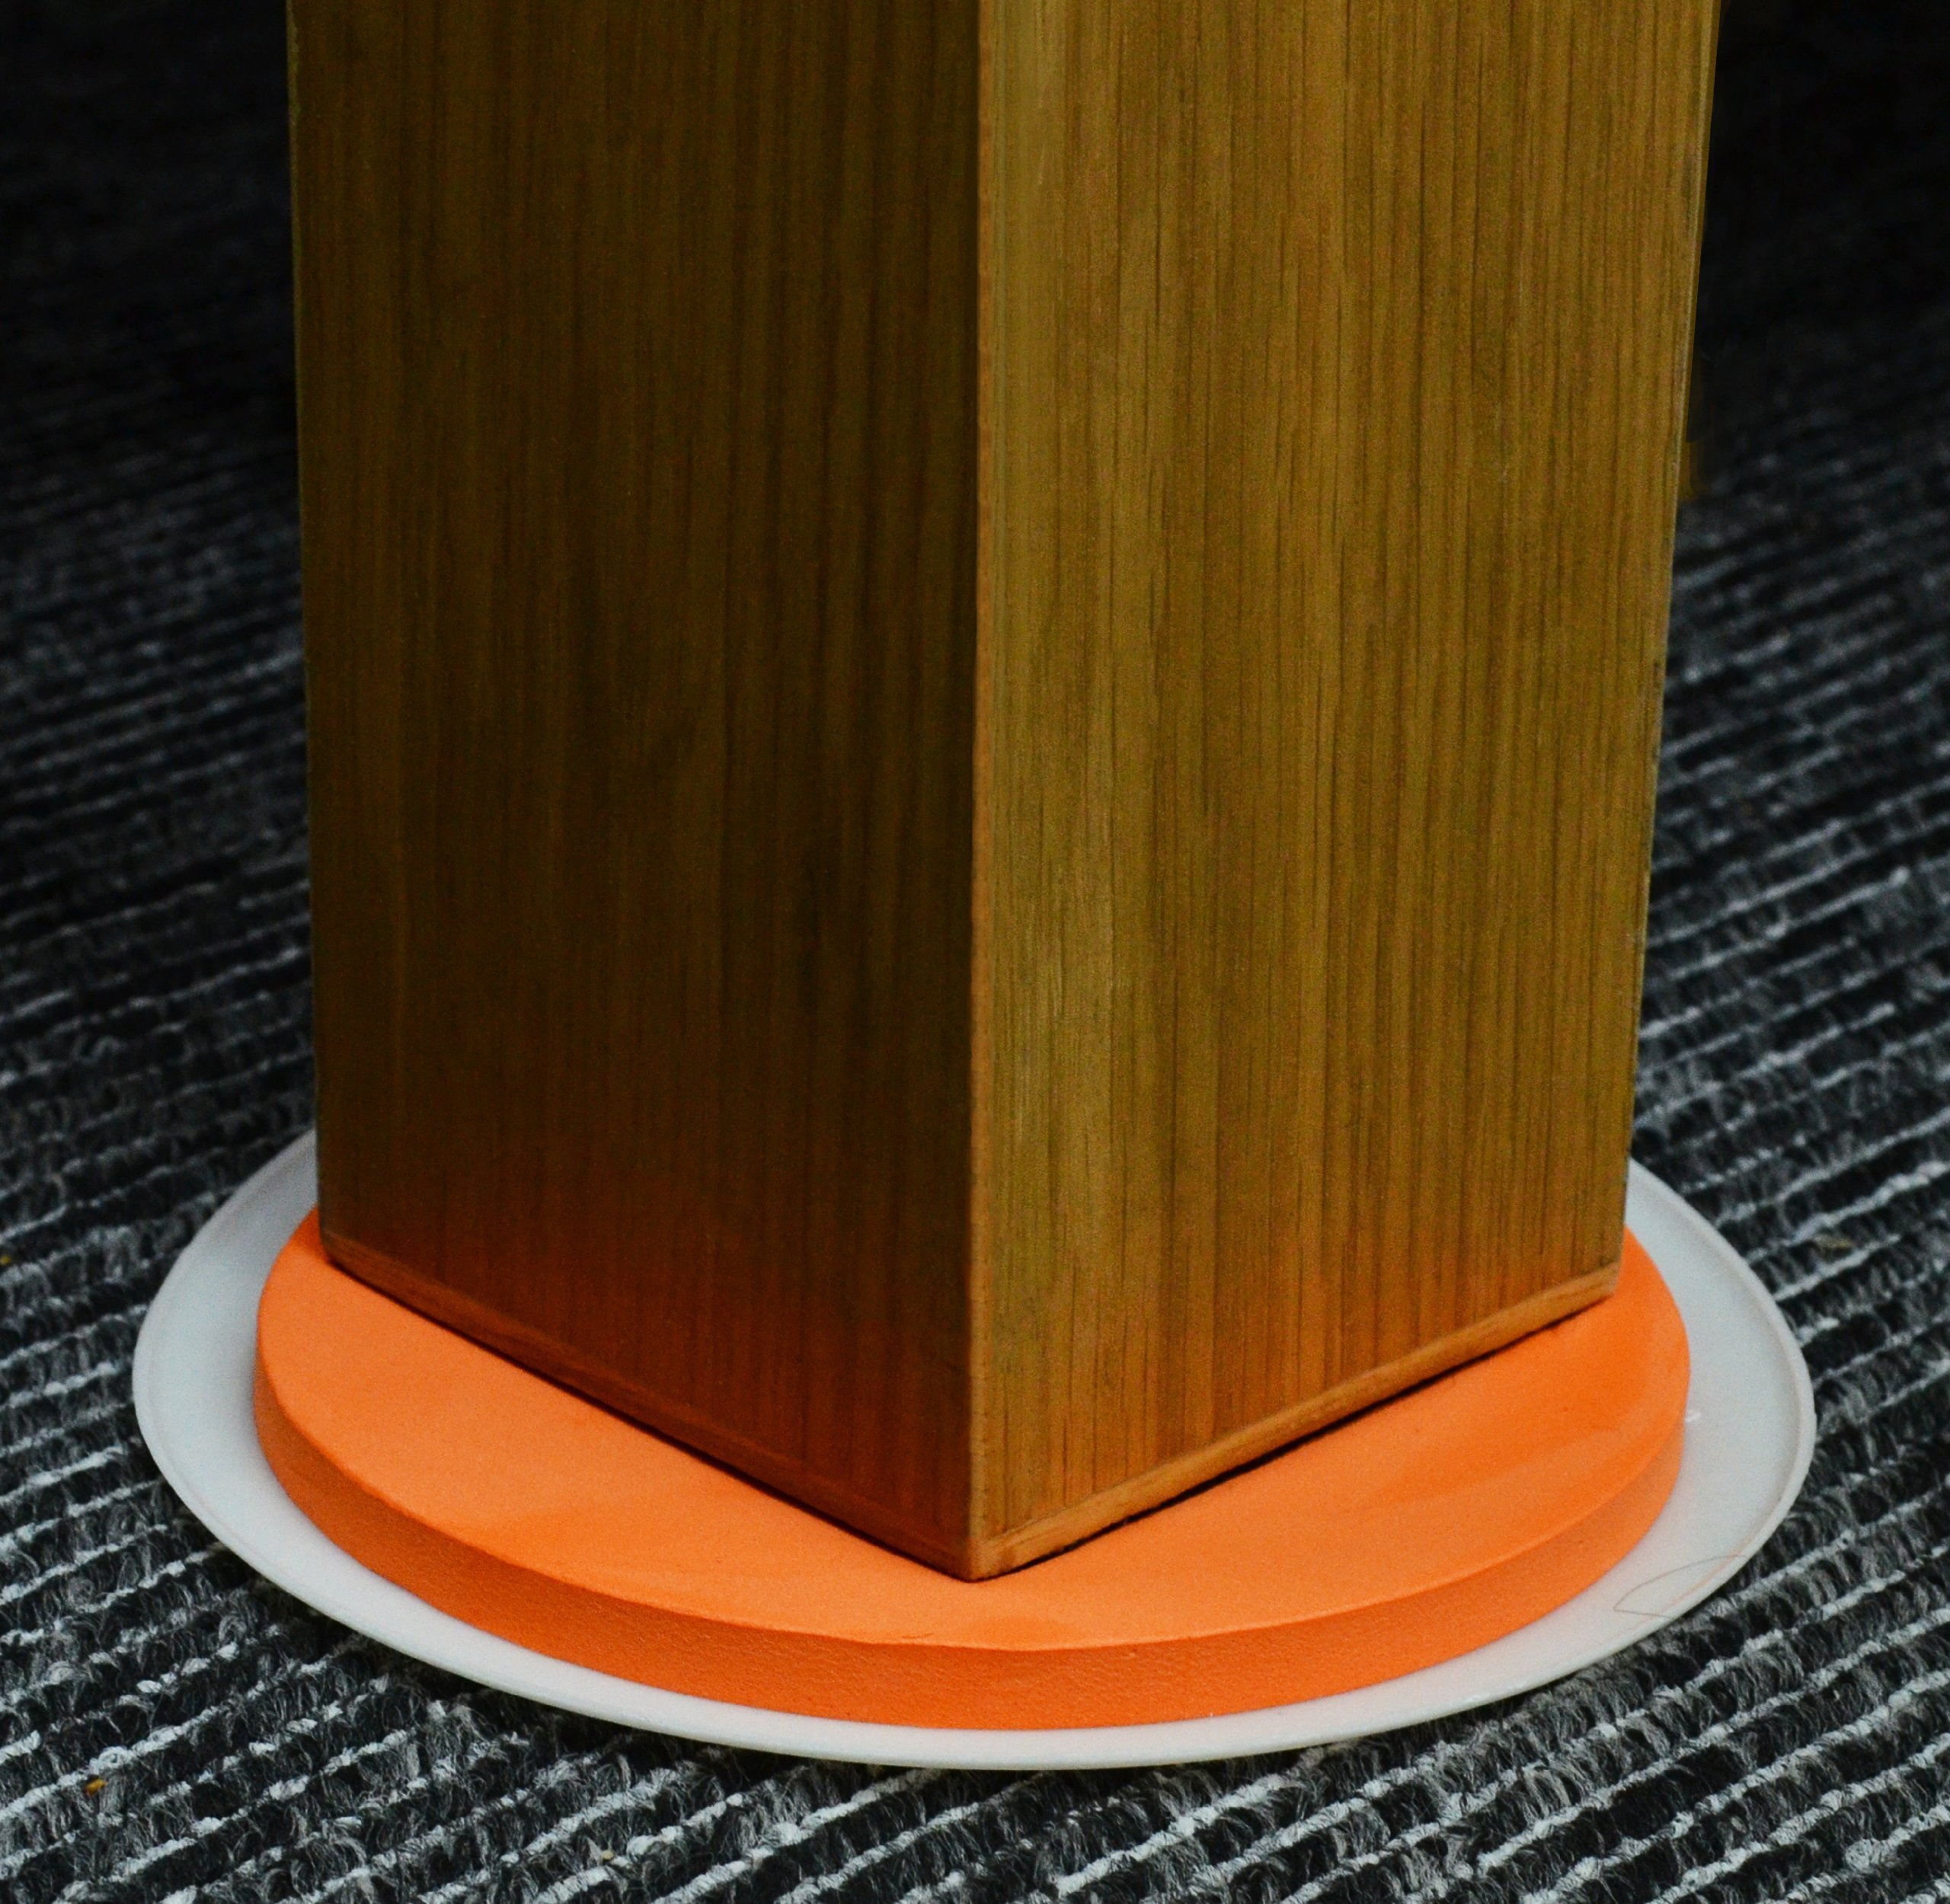 Medipaq Greatideas The Super Furniture Sliders (Genuine Original Orange Discs By Medipaq) - Moving Heavy Furniture Has Never Been Easier! 8 Piece Value Pack.